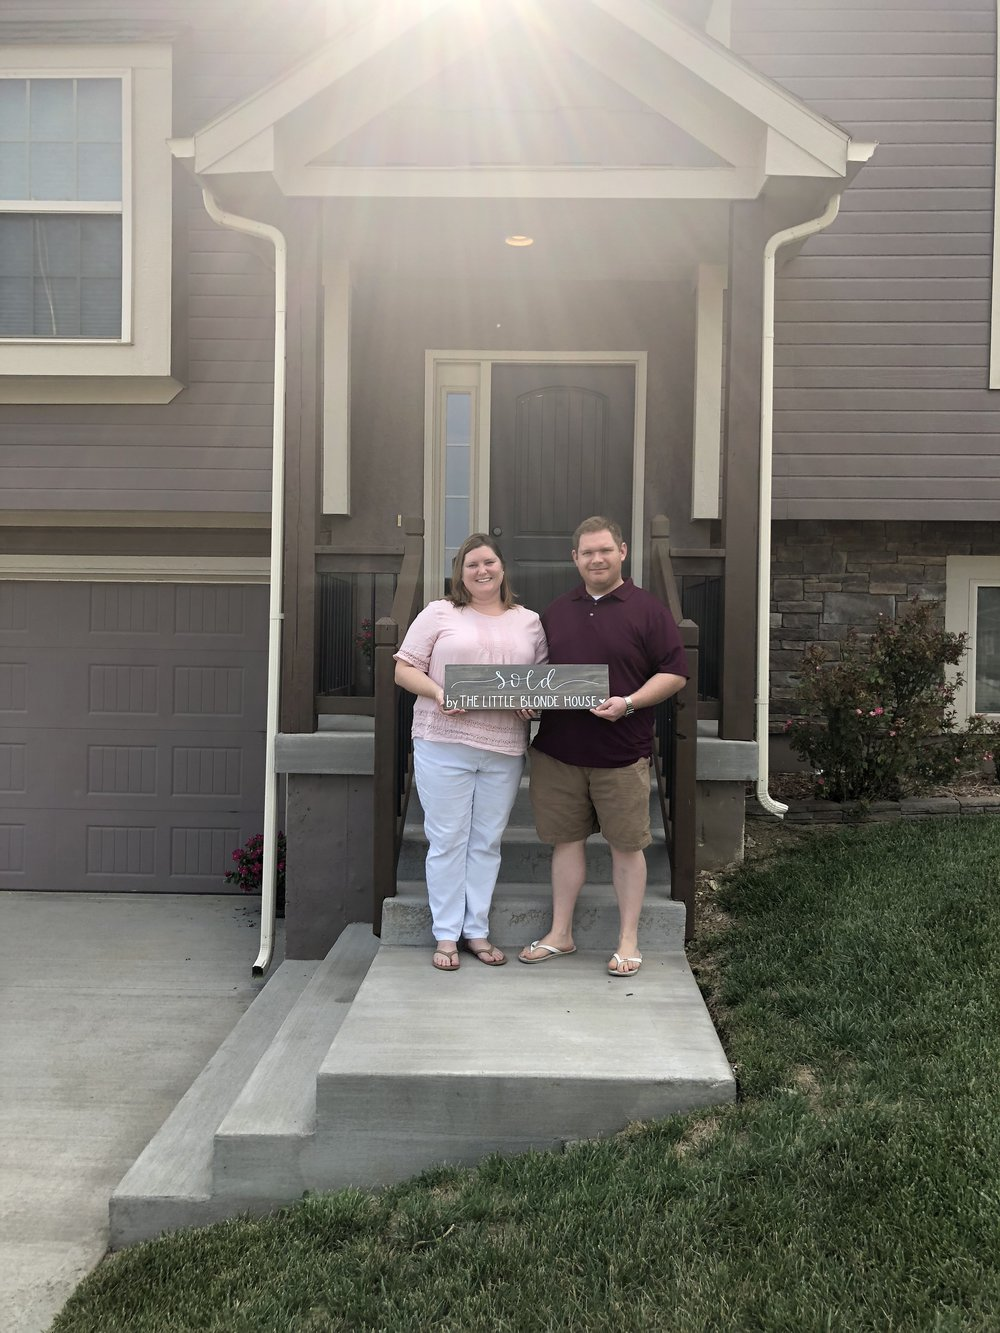 """Madison made this process so much easier. We had a ton of questions being new to the process and she patiently answered them all. She quickly responded to texts and emails and gave us plenty of suggestions and recommendations. Madison genuinely shared our excitement in buying our dream home and that made the experience all the better!""  Holly & Erik P."